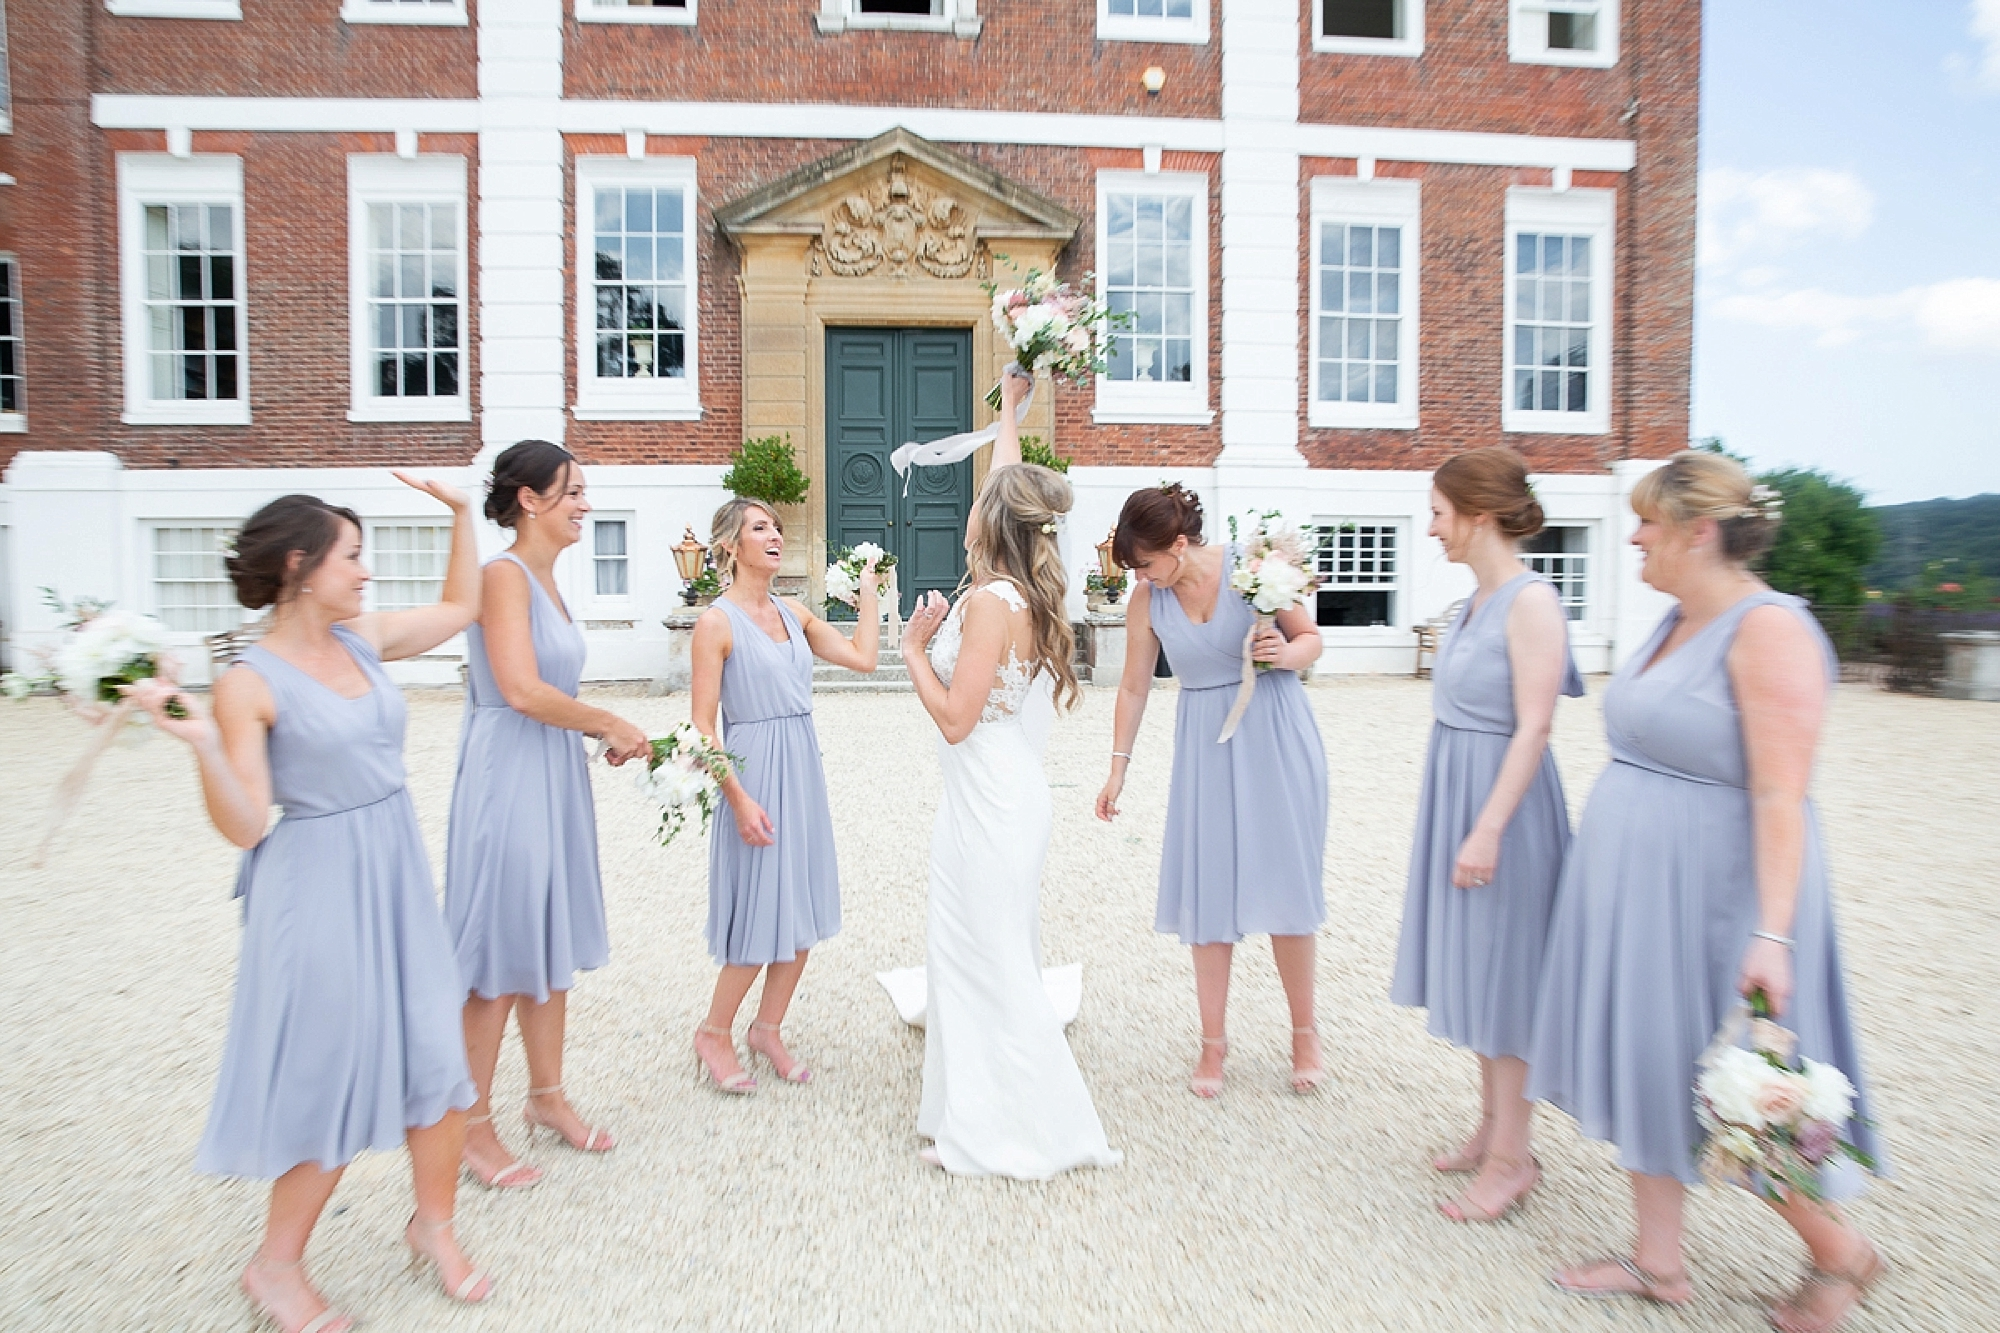 Bride in pronovias dress stands holding bouquet up at Devon wedding surrounded by her bridesmaids in blue